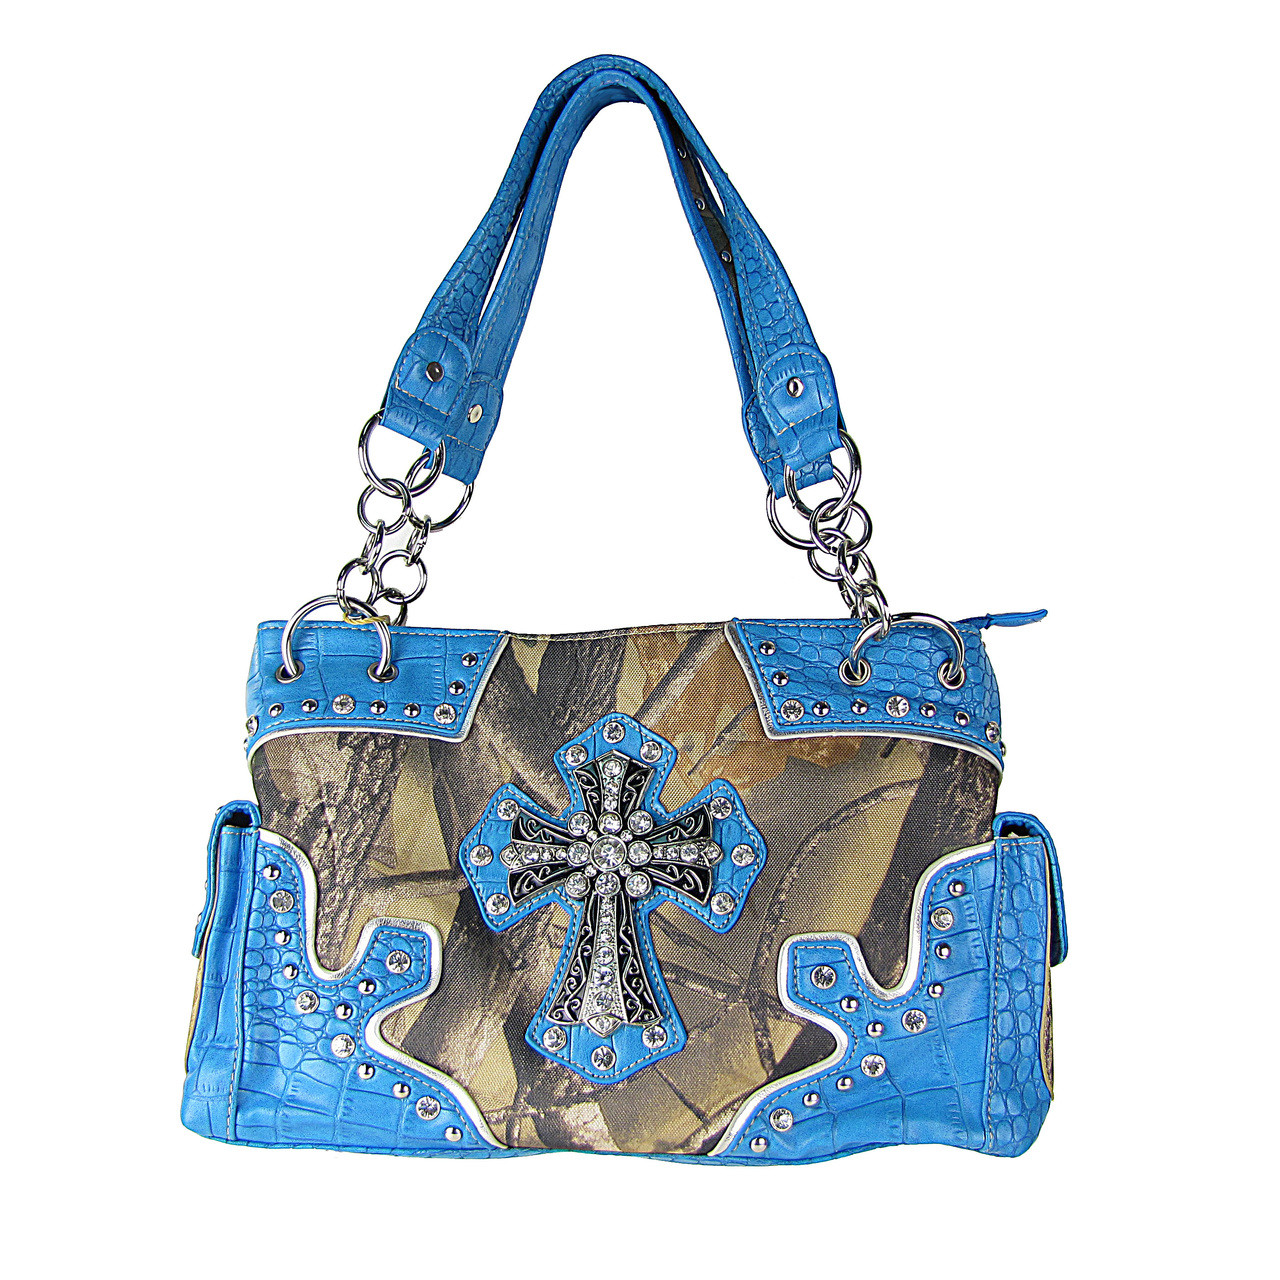 BLUE WESTERN MOSSY CAMO CROSS CONCEALED CARRY LOOK SHOULDER HANDBAG HB1-HC393-1BLU